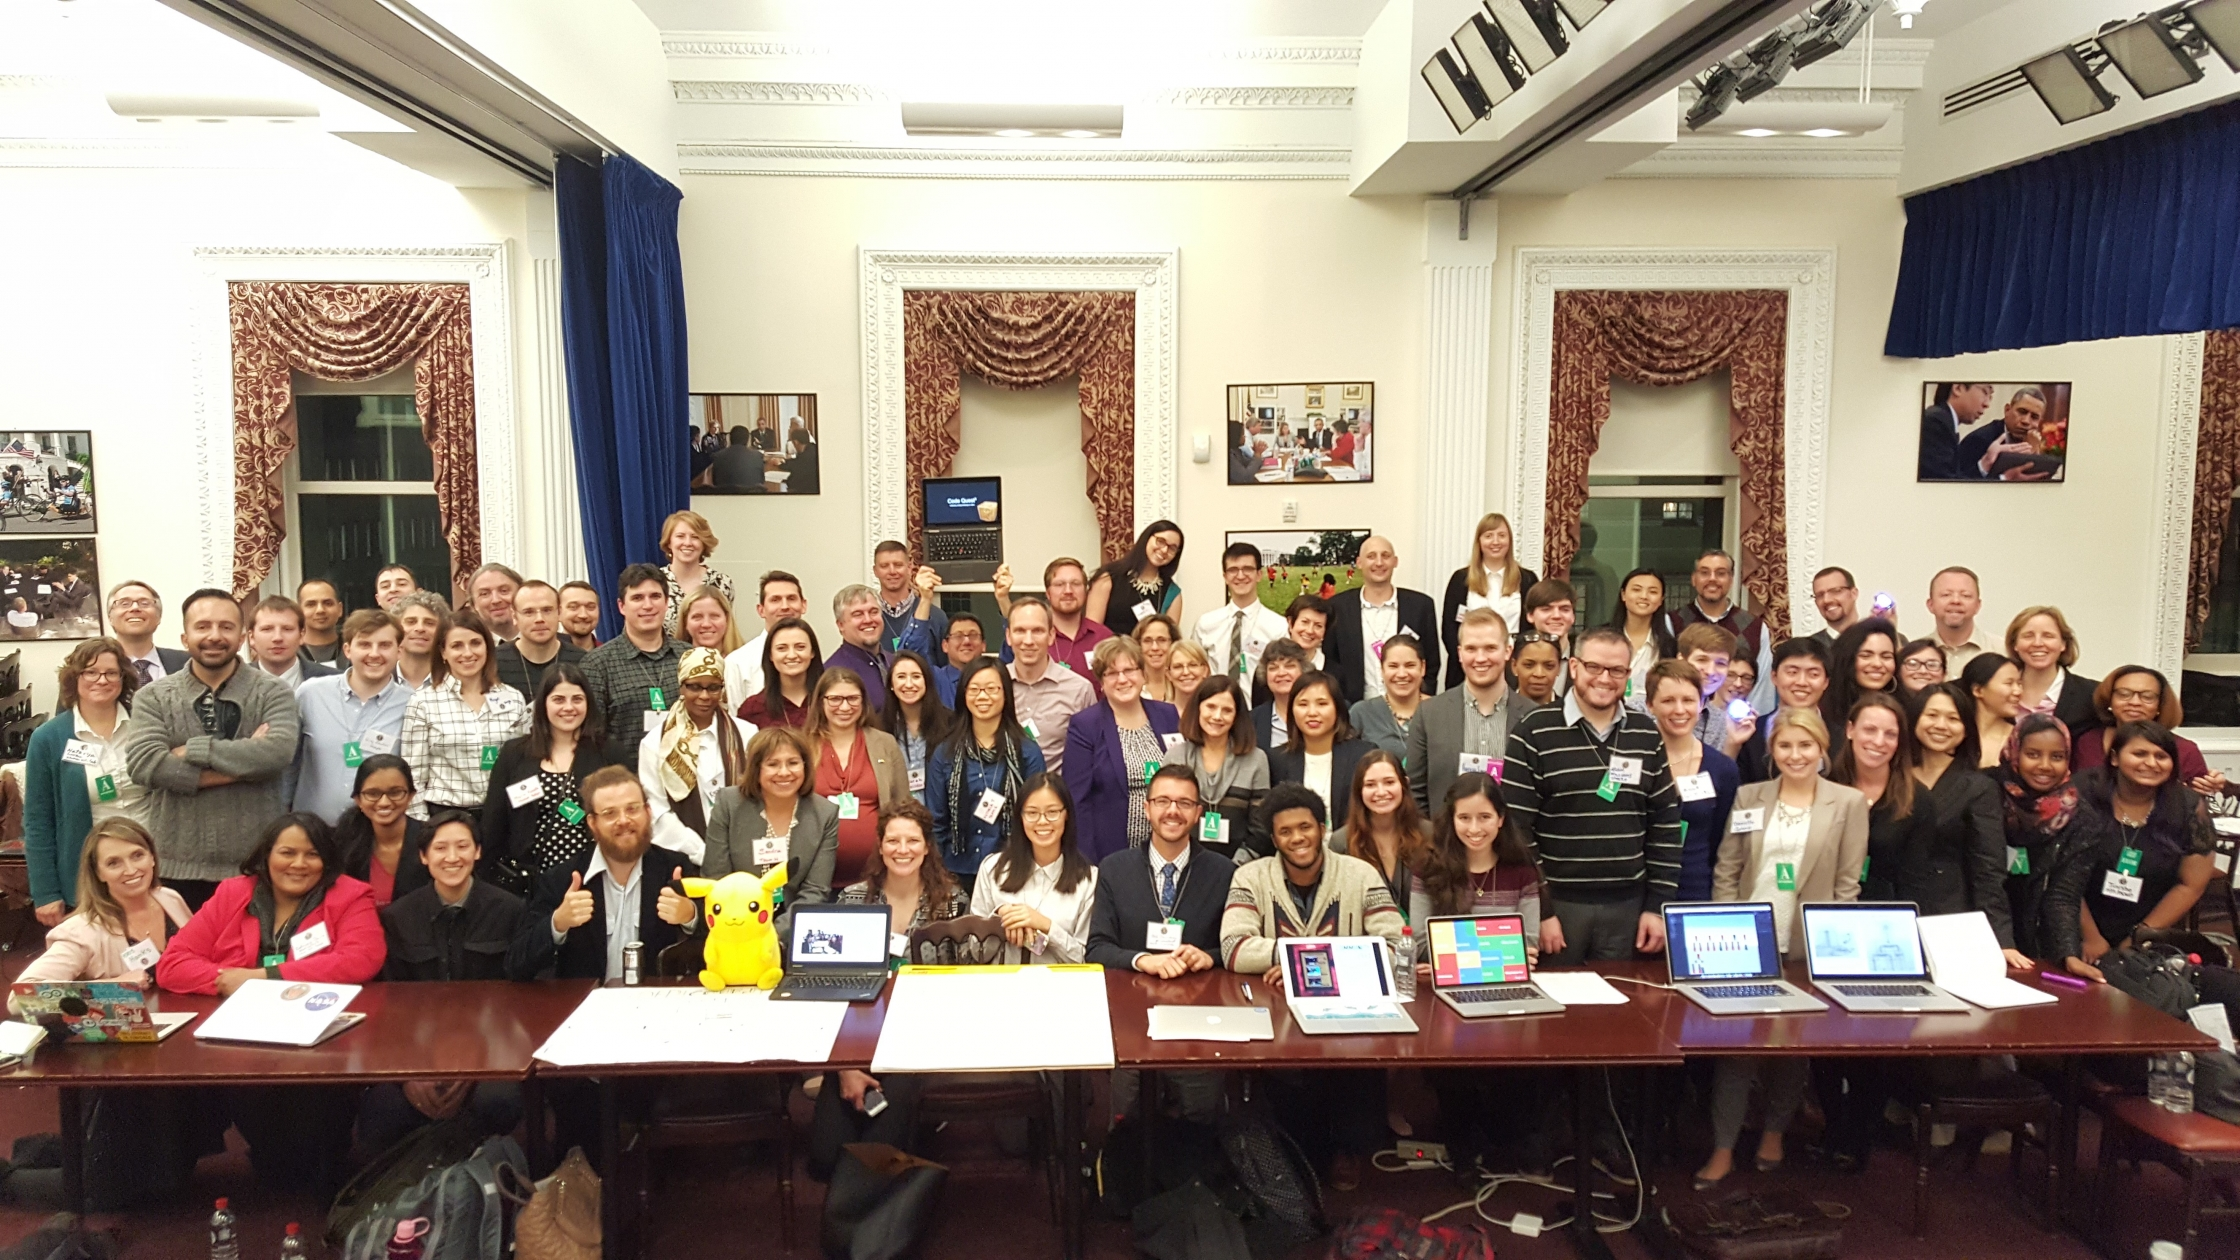 Educators, students, and developers generate new ideas for bringing computer science education to elementary school classrooms at first-ever White House Computer Science Tech Jam, December 7, 2015.